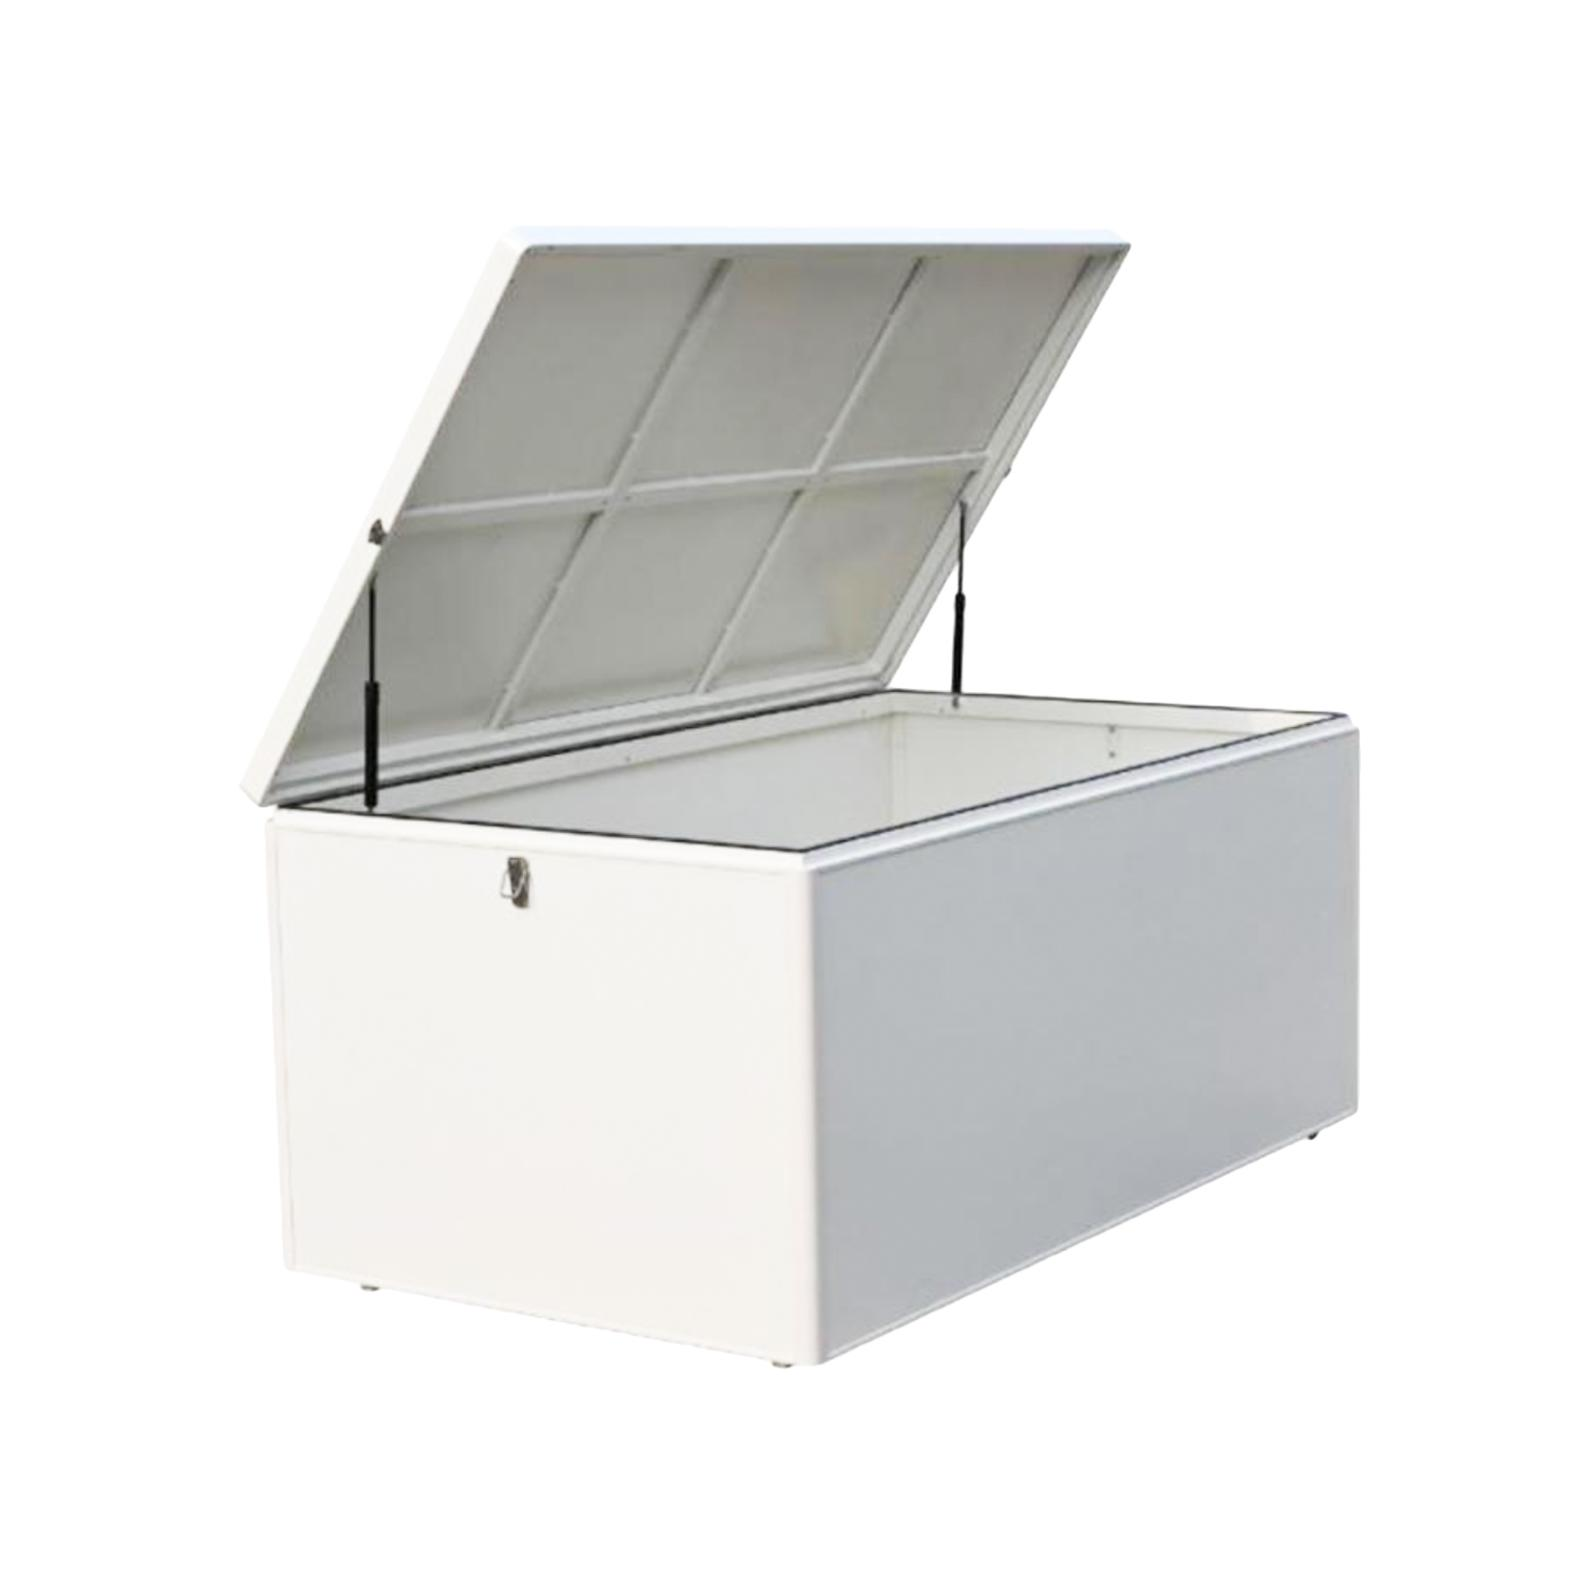 white aluminium metal garden storage cushion box open